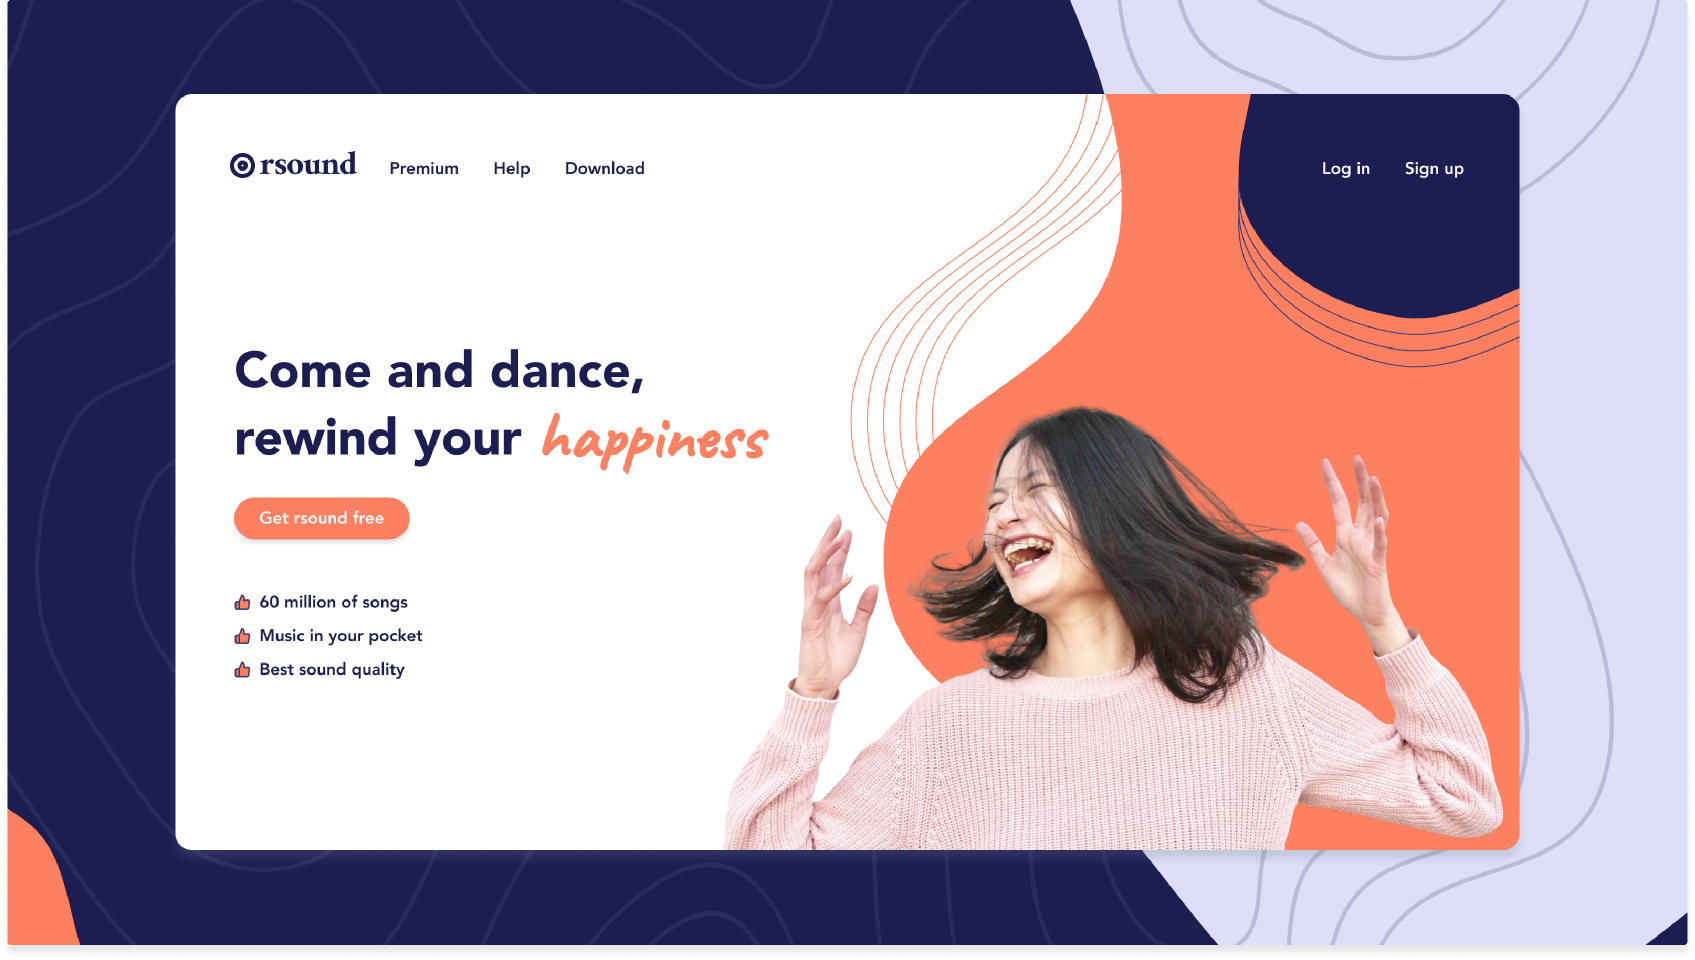 Music streaming landing page - Rsound - Exploration image